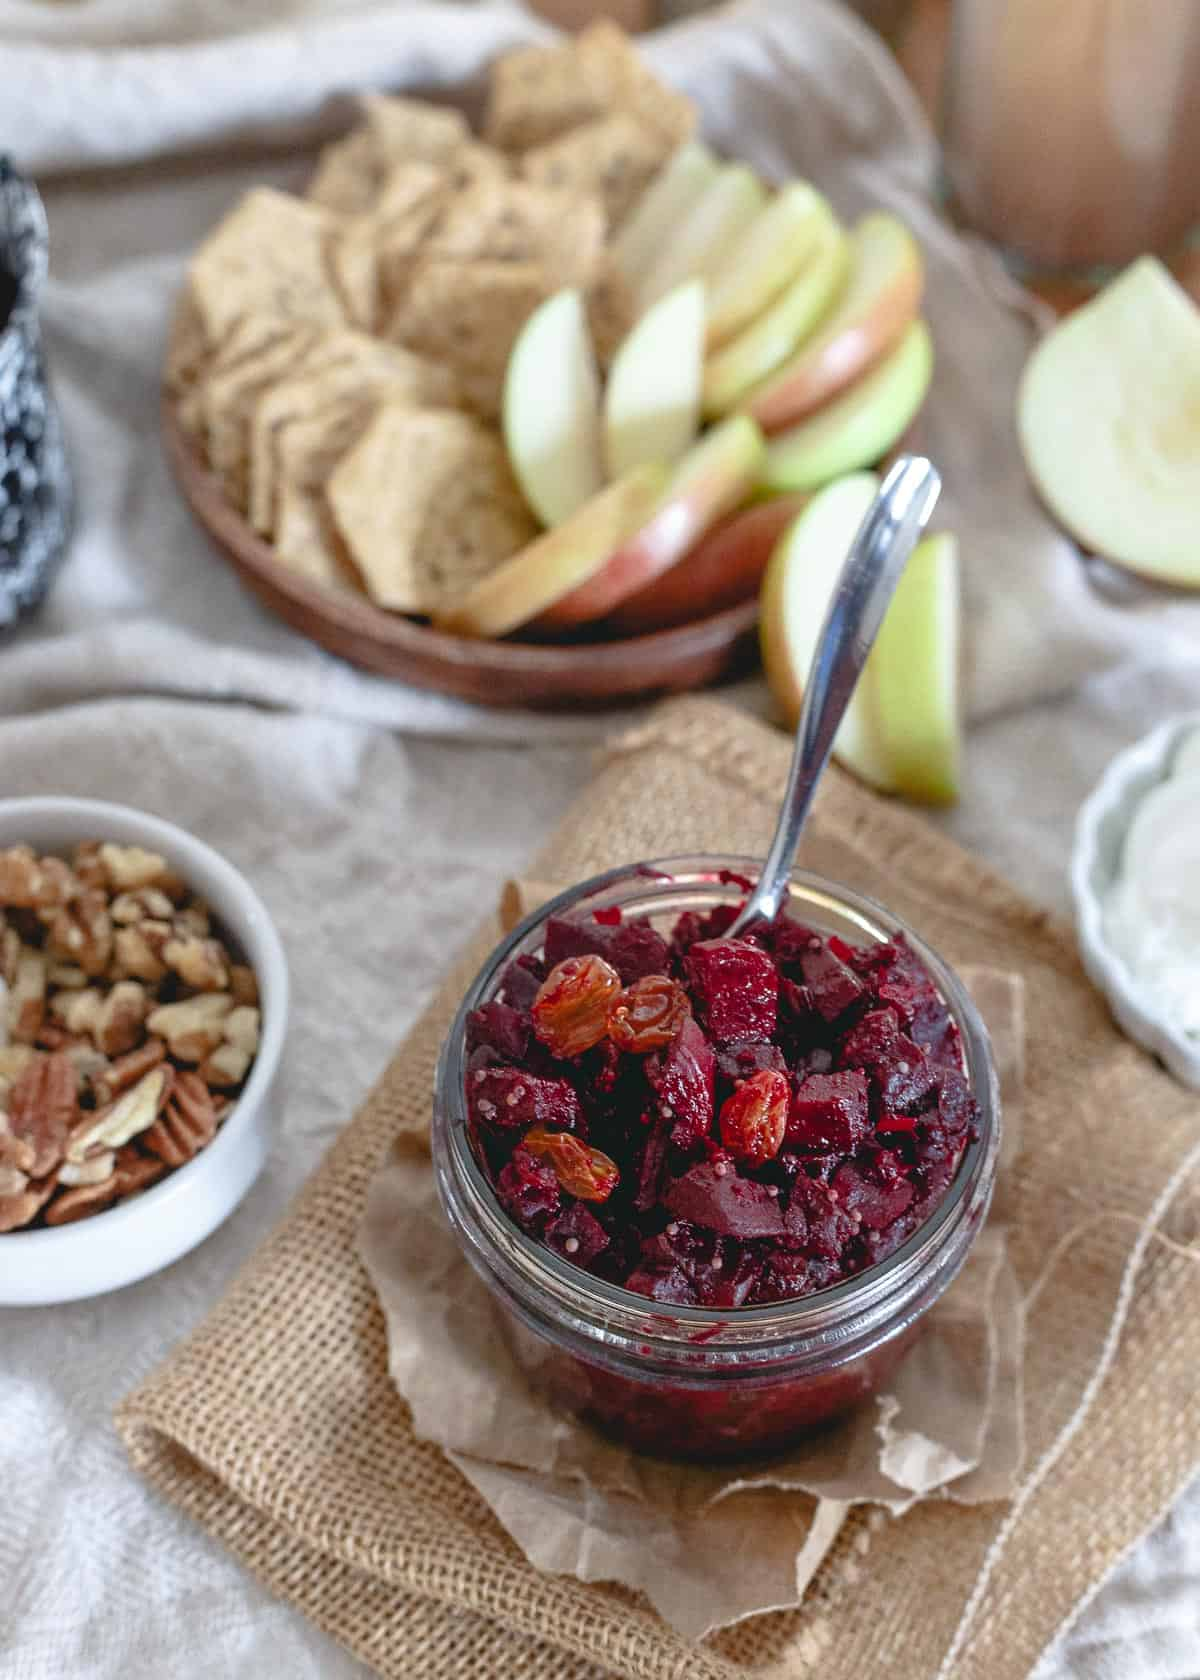 This beet apple chutney is infused with orange and lots of warming winter spices. A great spread on crackers, accompaniment to meat or even dolloped in yogurt!